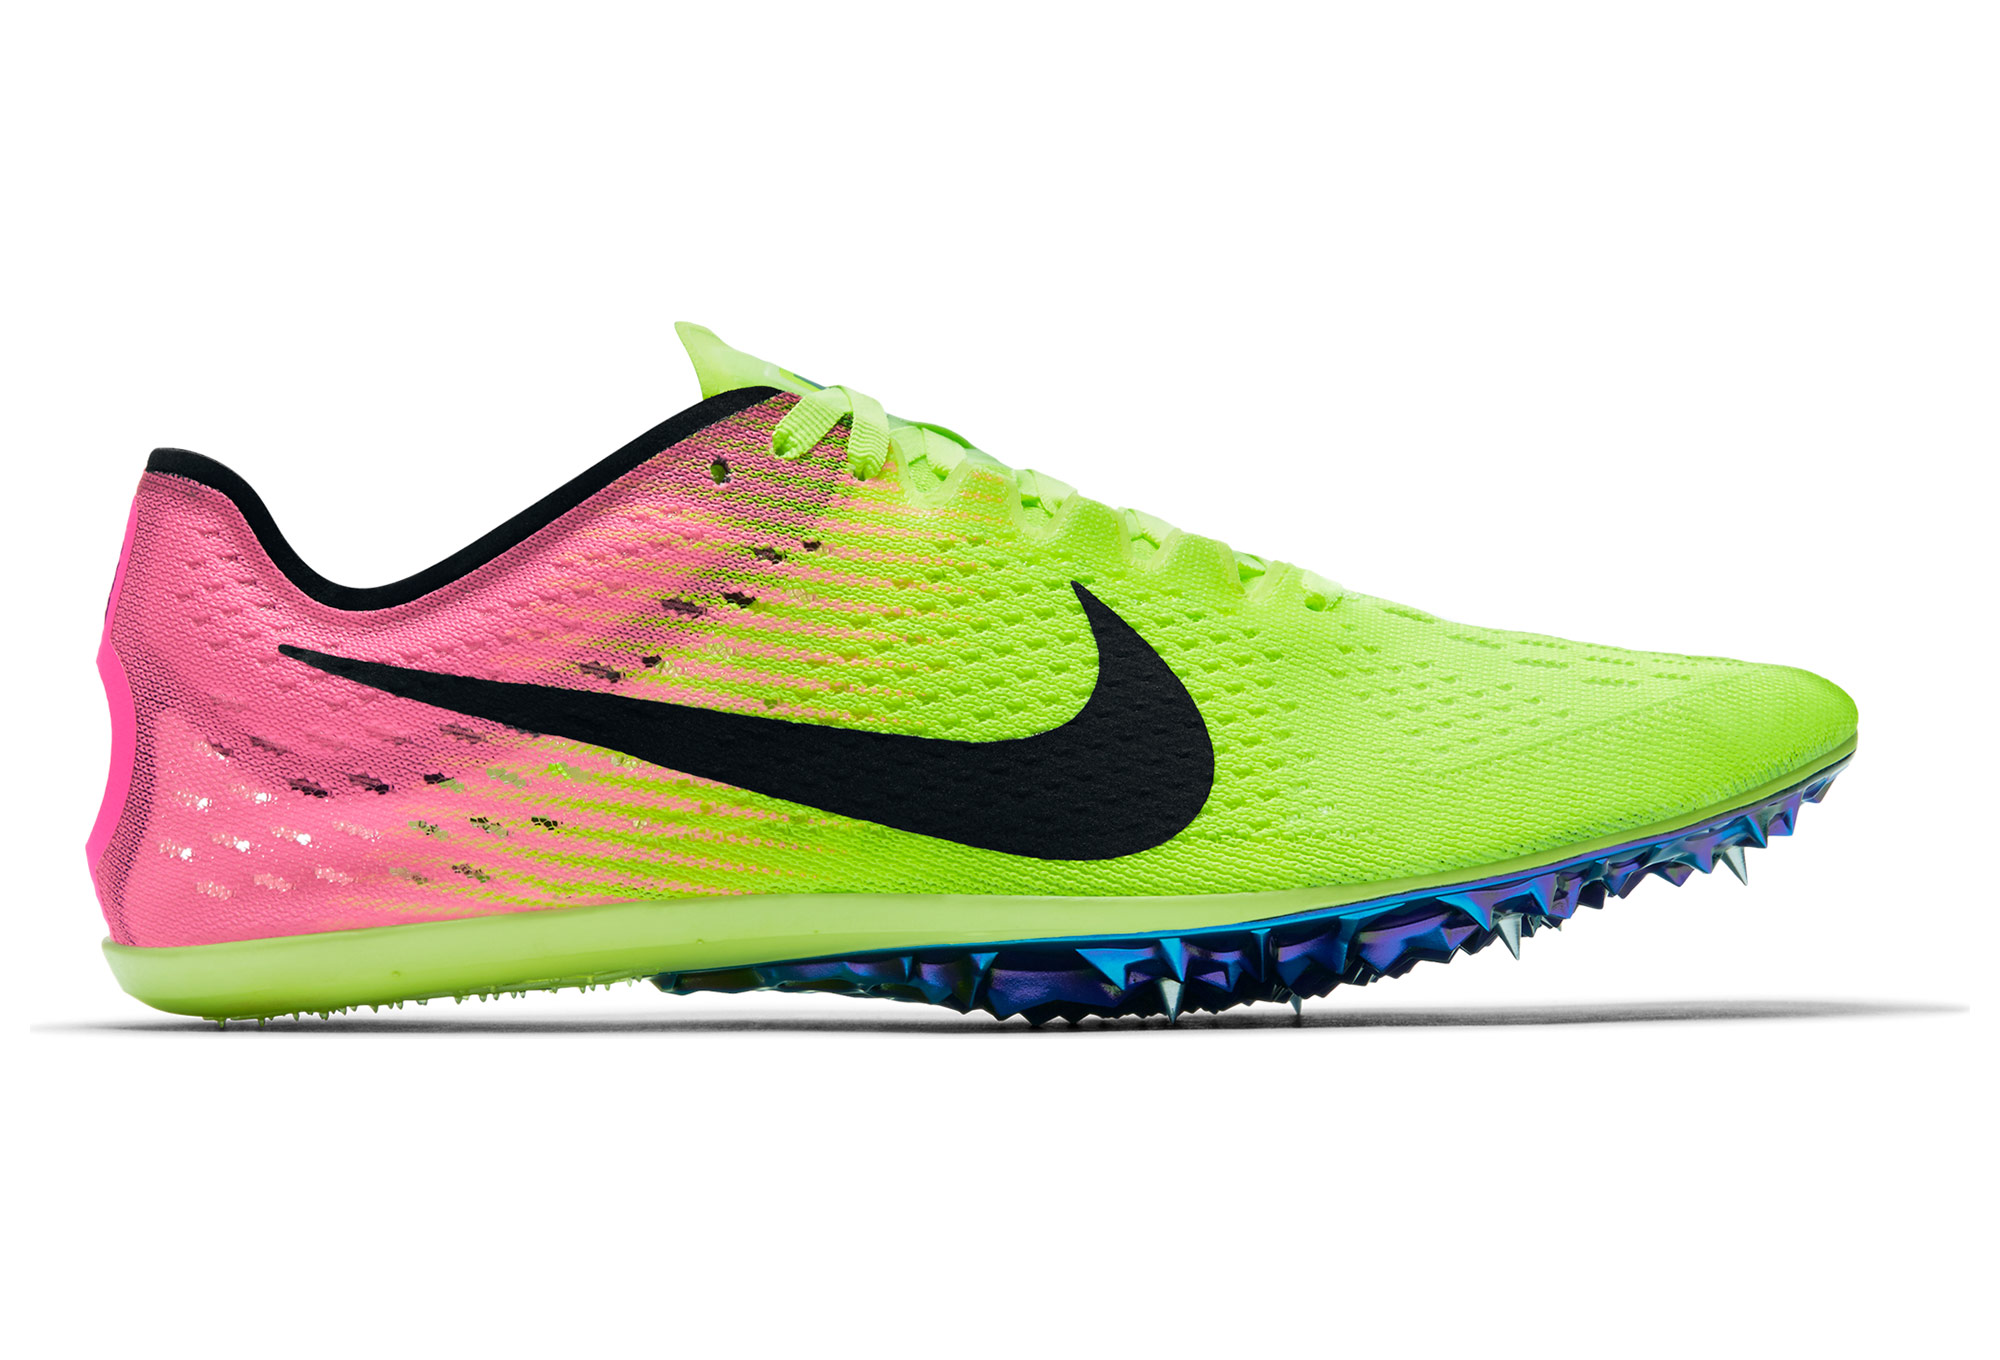 nike zoom victory elite 2 shoes yellow pink unisex